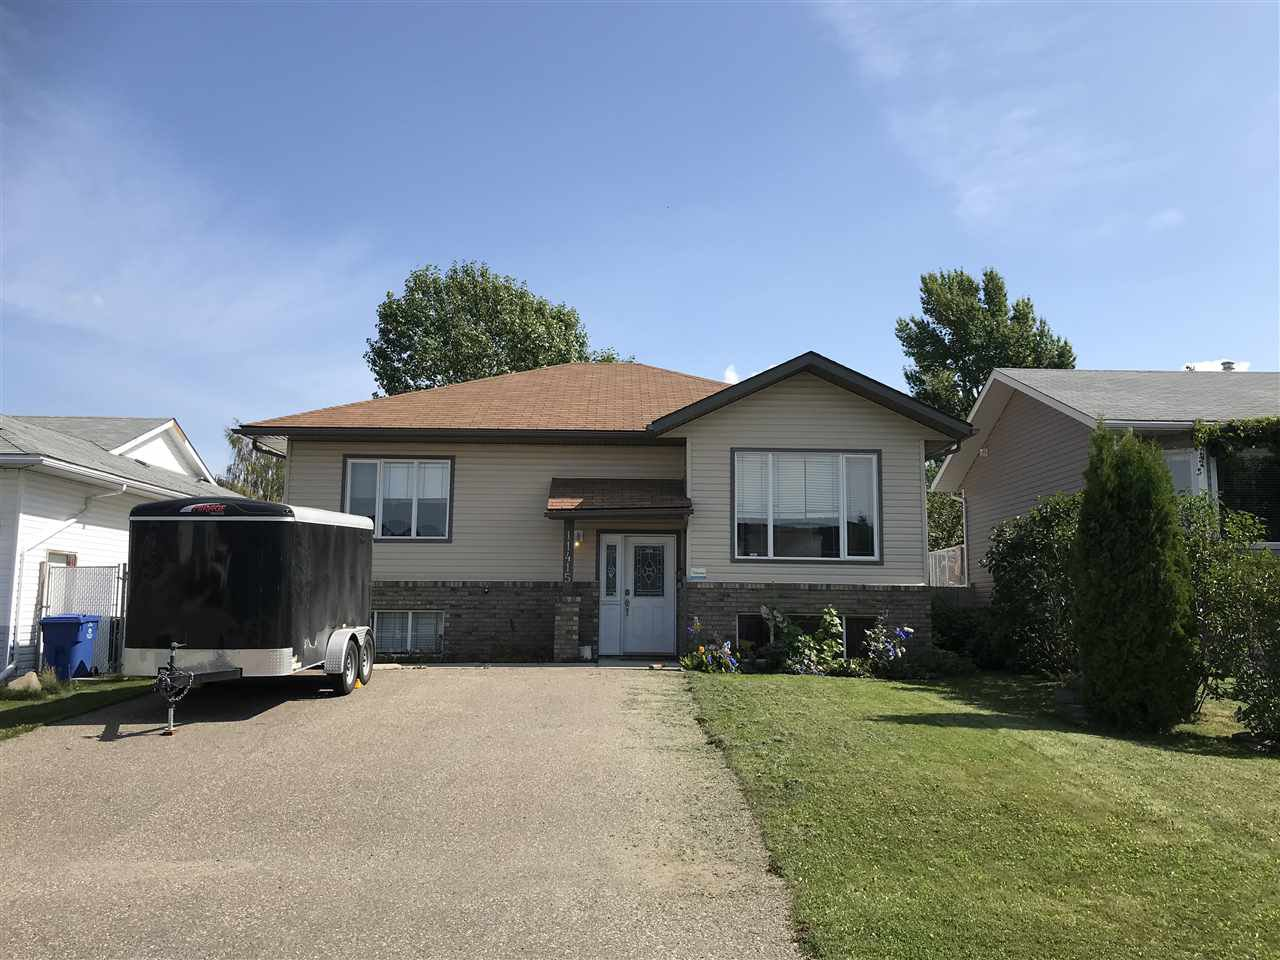 Main Photo: 11415 96A Street in Fort St. John: Fort St. John - City NE House for sale (Fort St. John (Zone 60))  : MLS®# R2396039